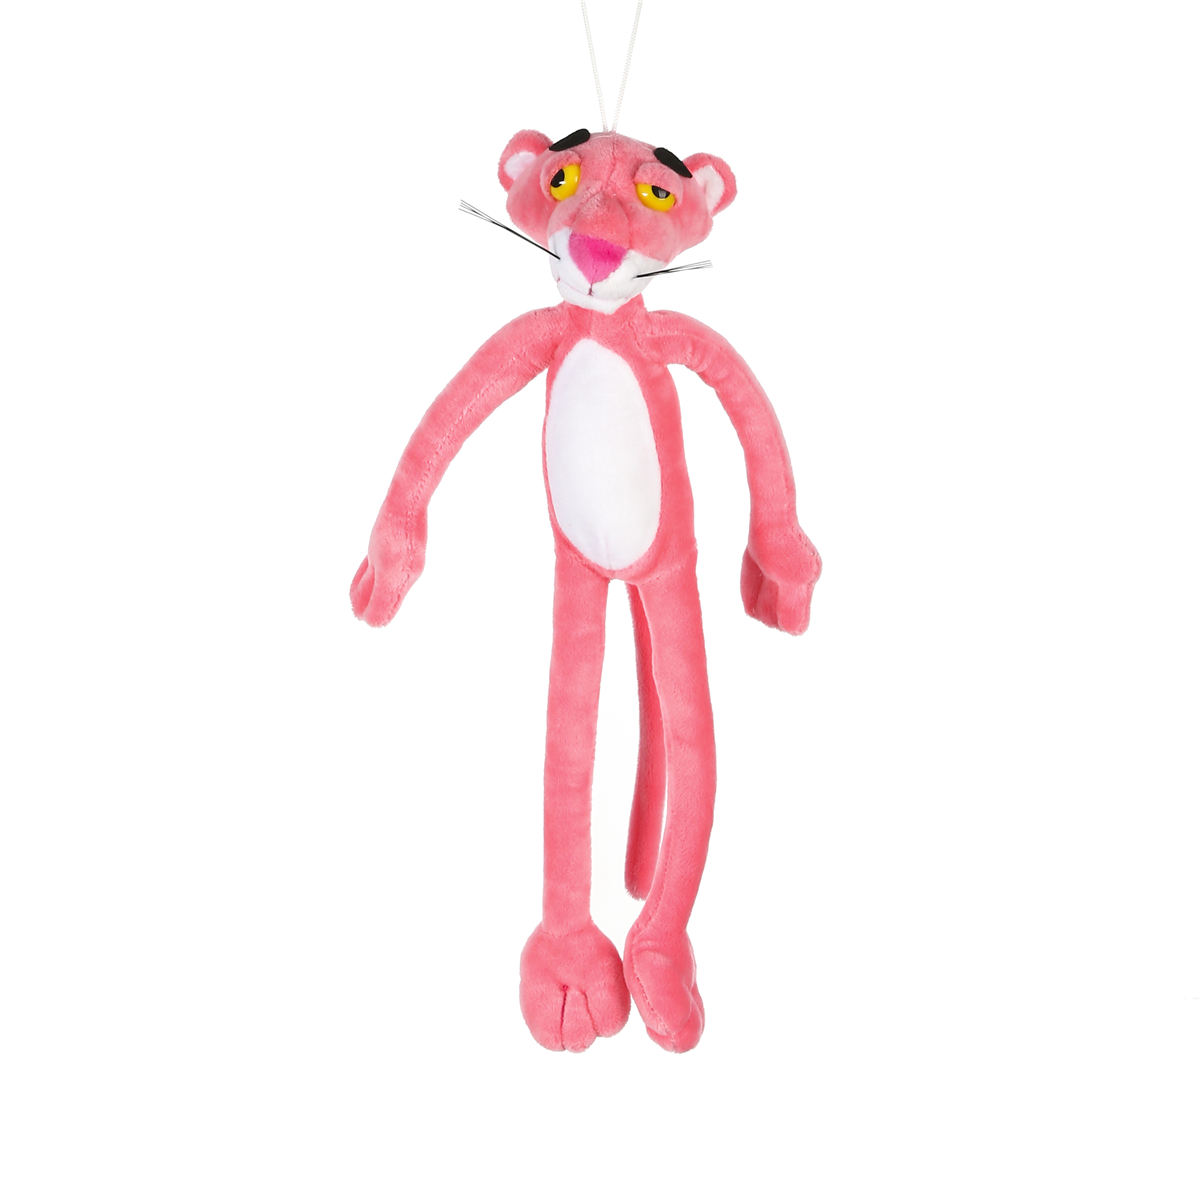 Pudcoco 16'' Pink Panther Plush Stuffed Soft Toy Animal Doll Toy Baby Kids Children Gift